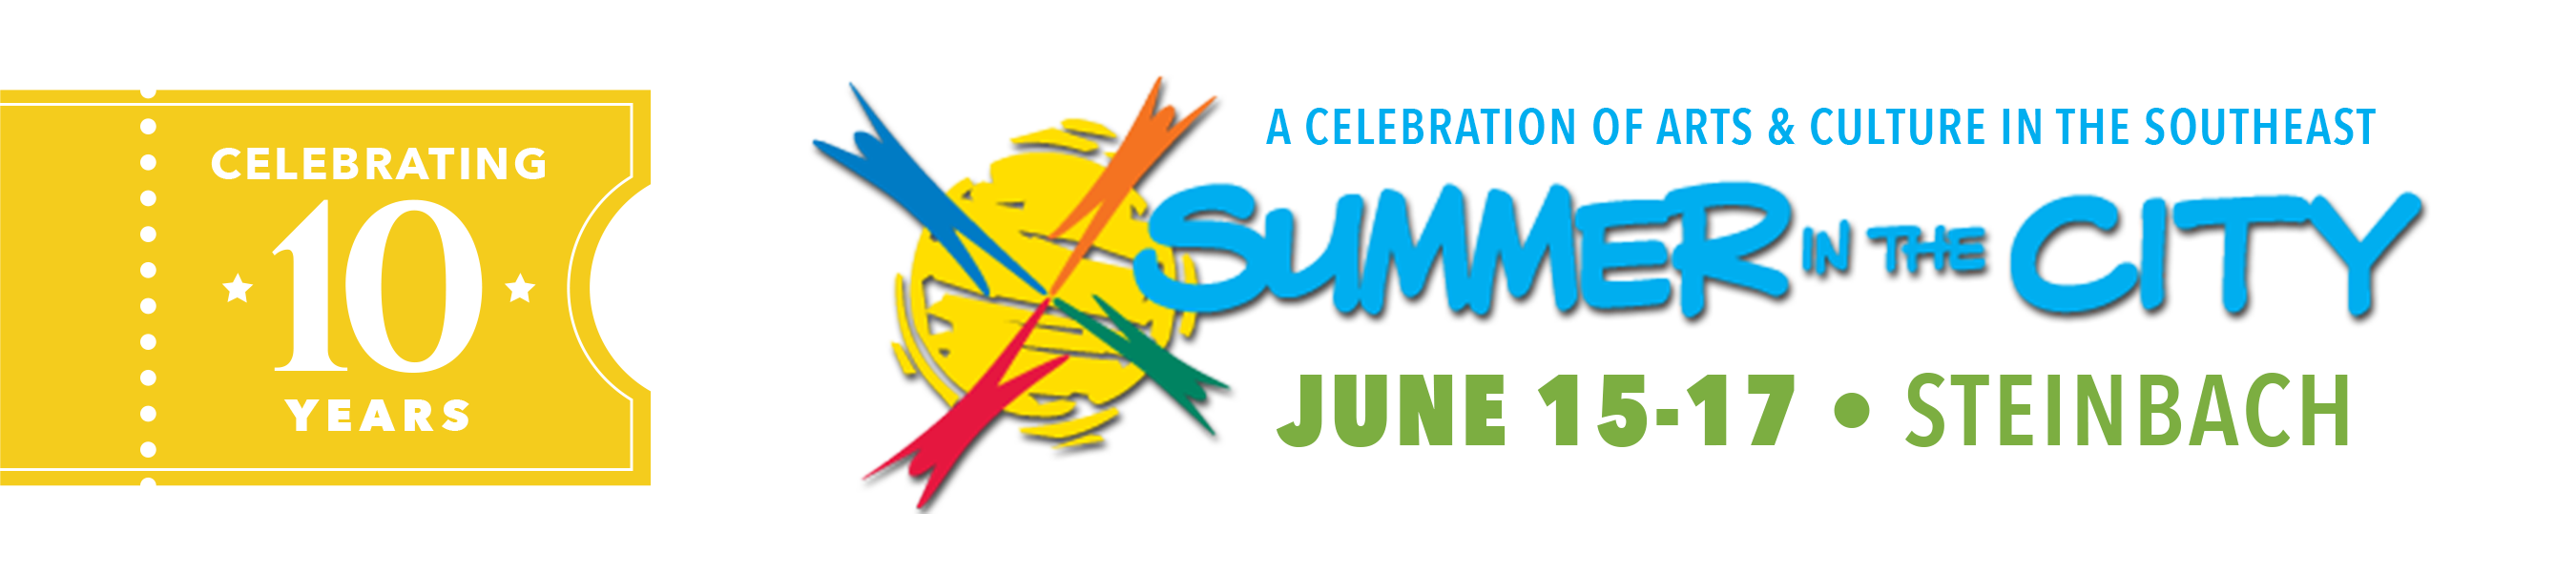 Summer in the City - Celebrate Arts, Culture & Summer in the heart of Steinbach.